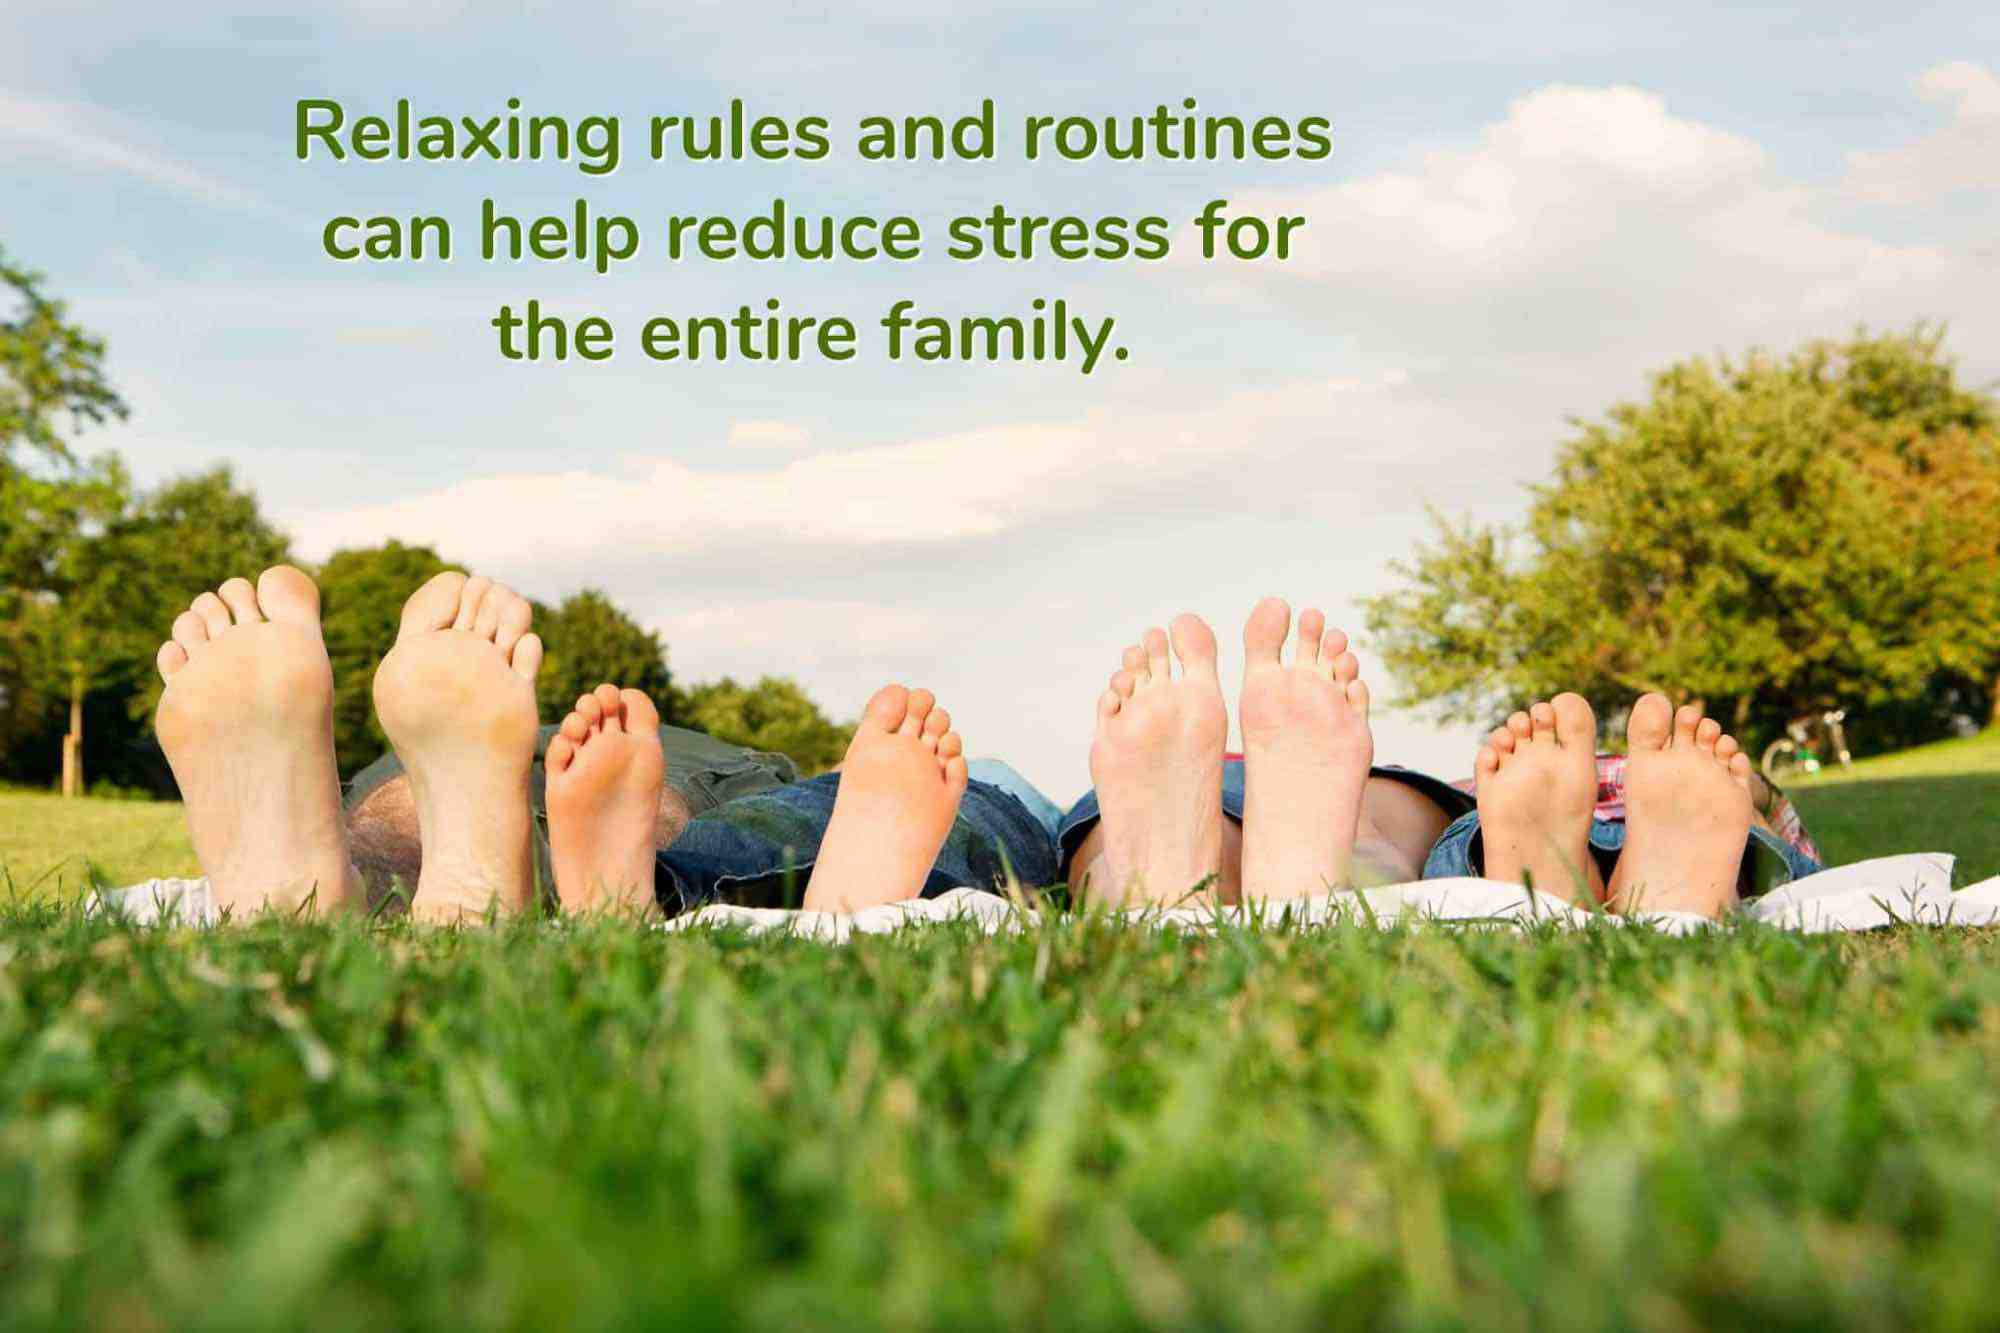 A family's bare feet lined up in a row as they lie in the grass together